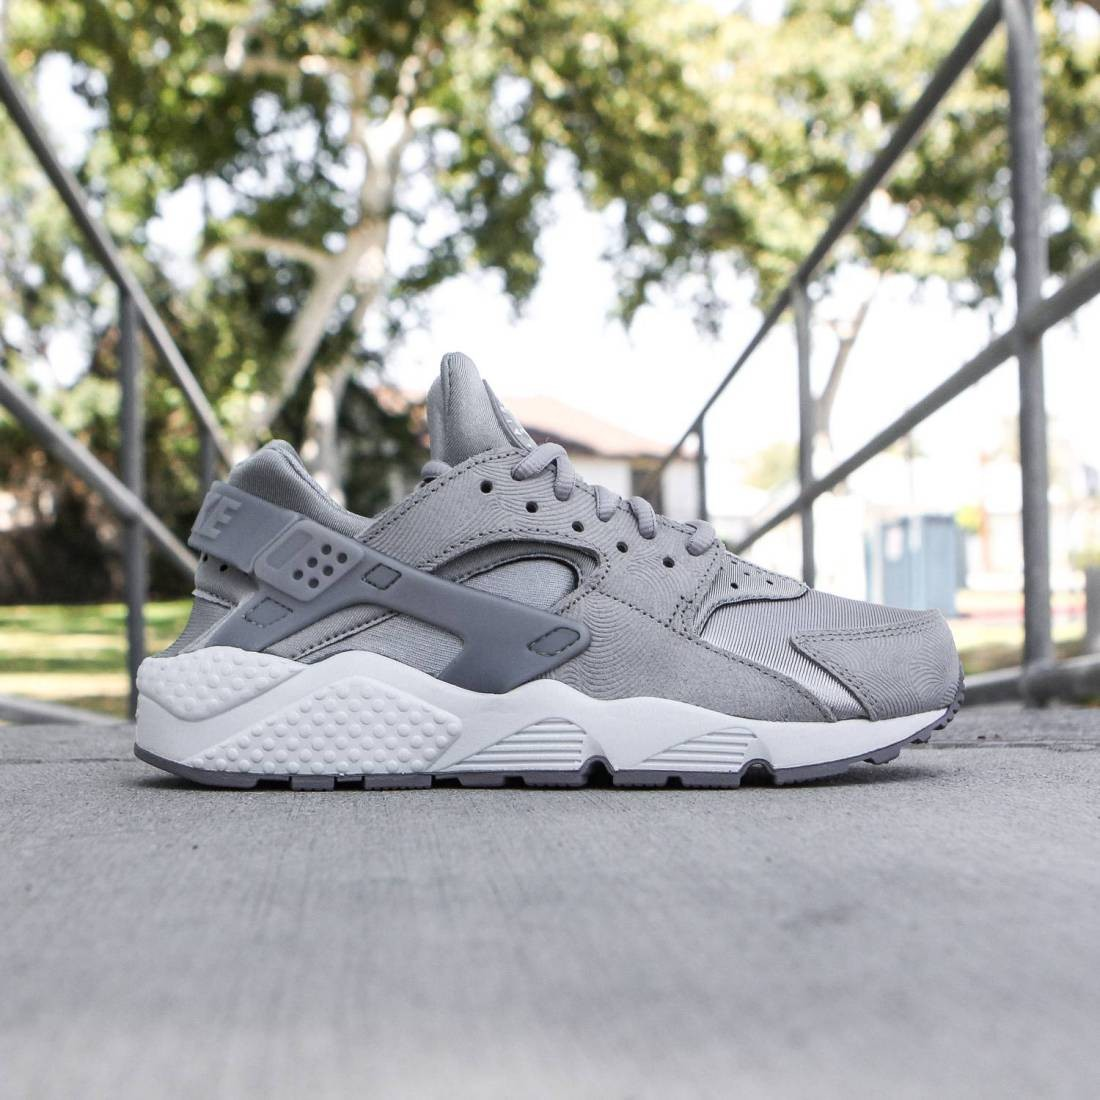 check out big sale a few days away Sortie Destockage nike air huarache Baskets - archipoles.fr.